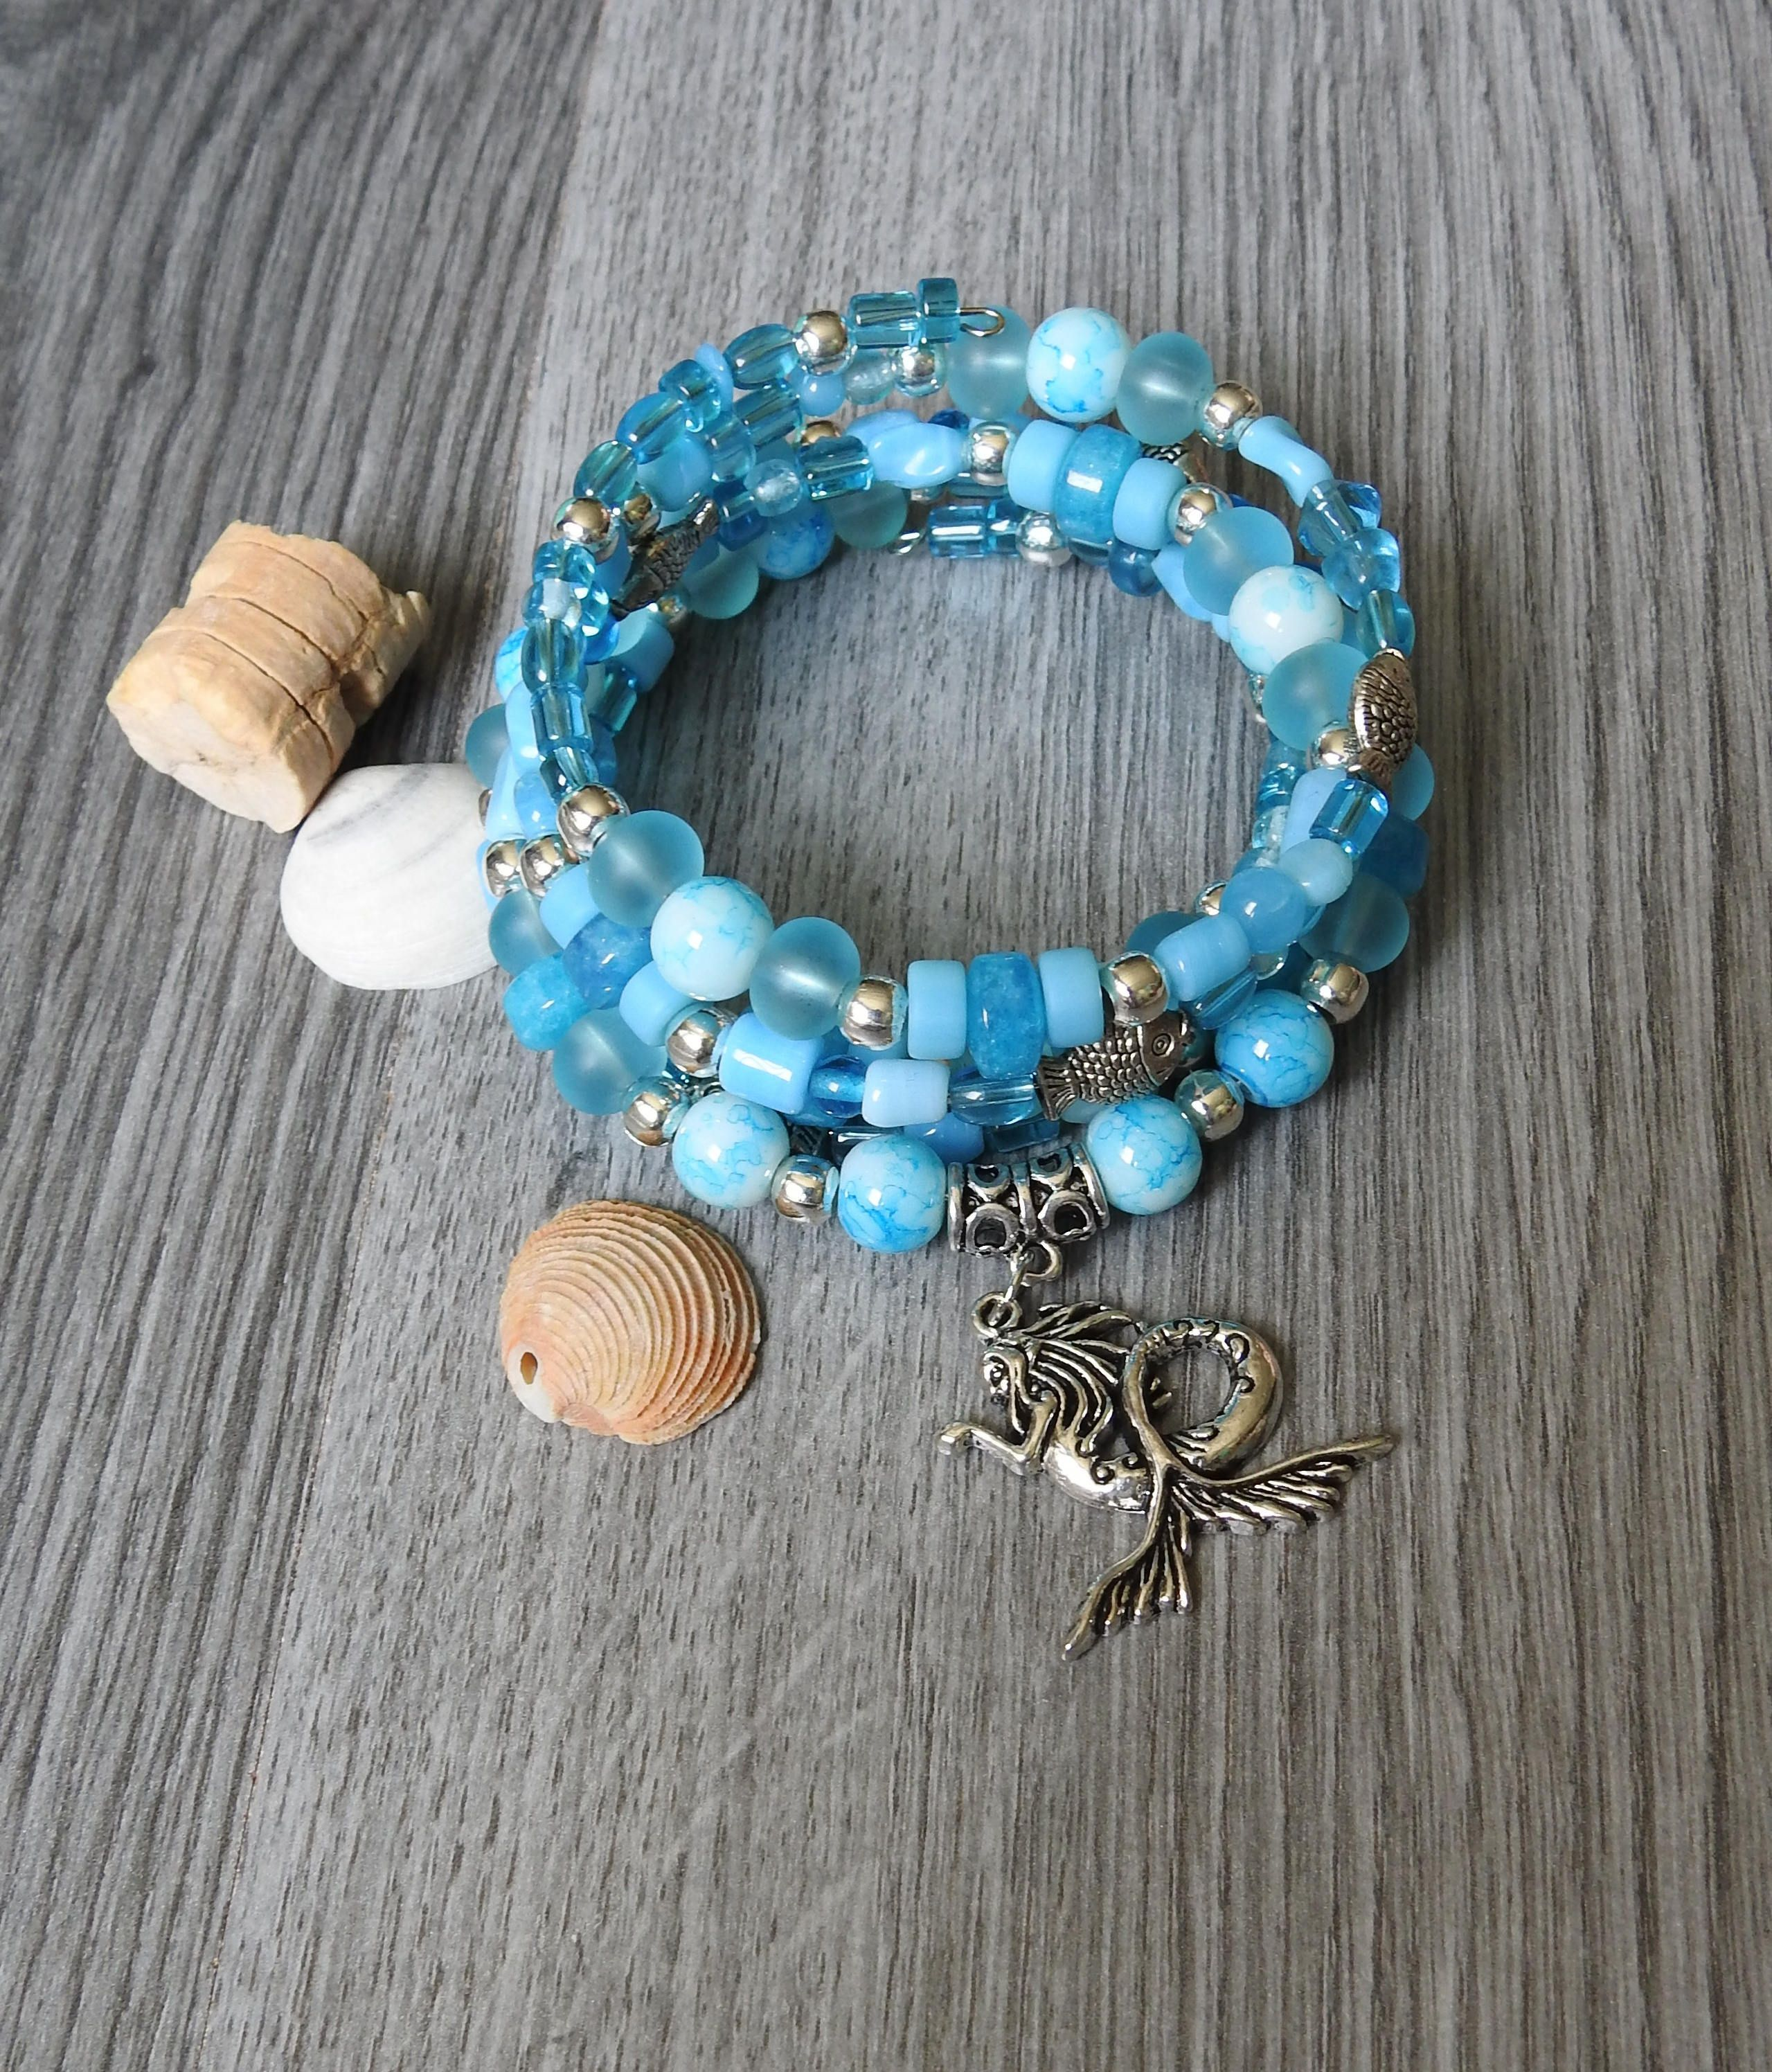 sand wrap gemstone sea products sediment jasper jewelry boho turquoise bracelet leather dollar beach